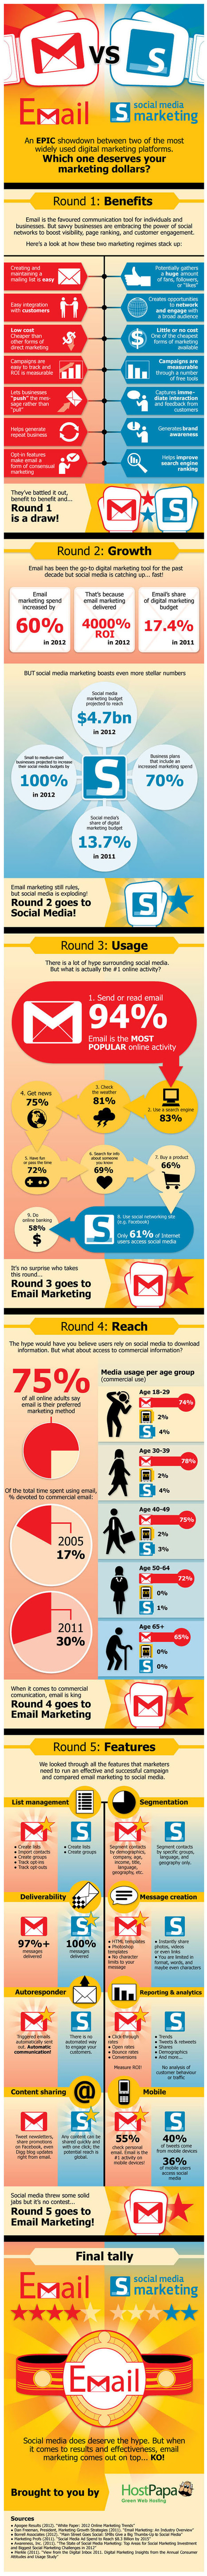 Email Marketing vs Social Media Marketing | Online Marketing Resources | Scoop.it